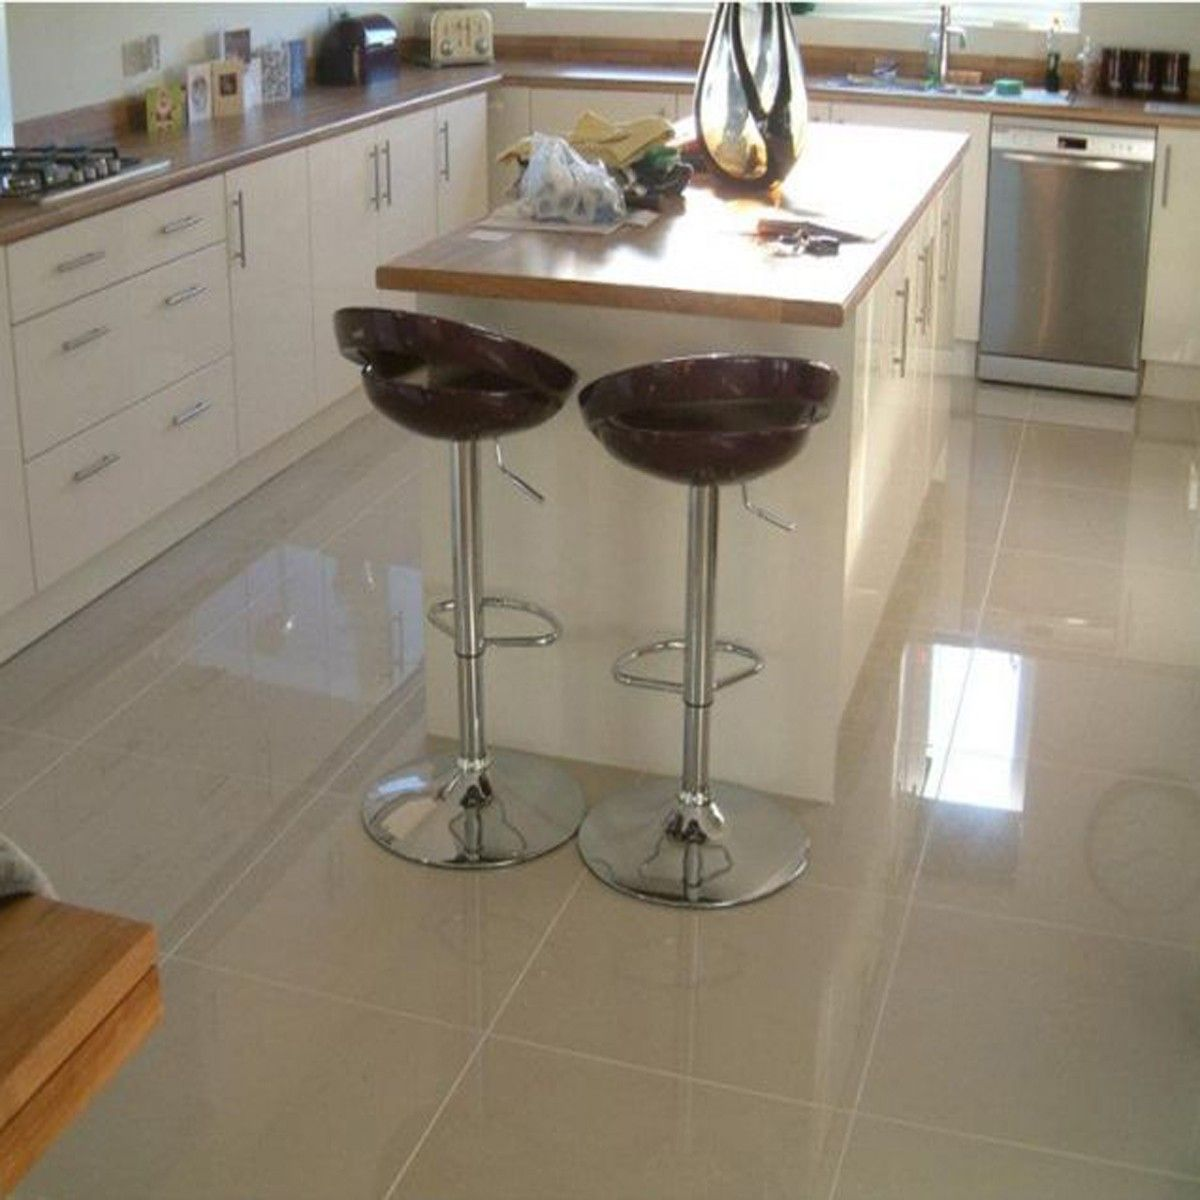 Super Polished Marfil Porcelain Floor Tile Tile Choice Porcelain Tiles Kitchen Porcelain Tile Floor Kitchen Kitchen Flooring